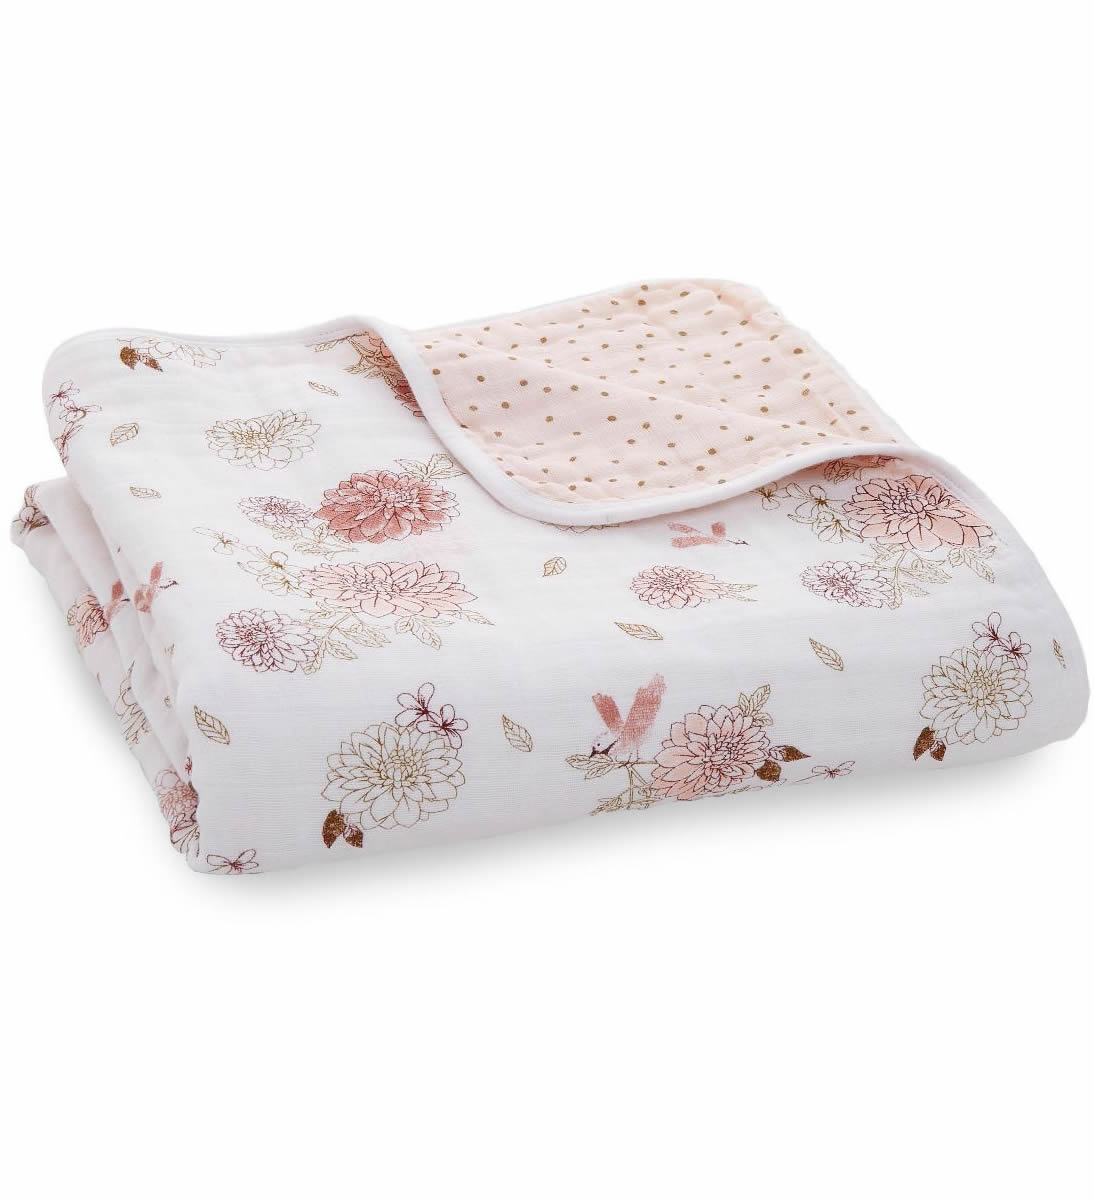 Aden /& Anais Classic Dream Disney Cotton Muslin Baby Blanket The Lion King NEW